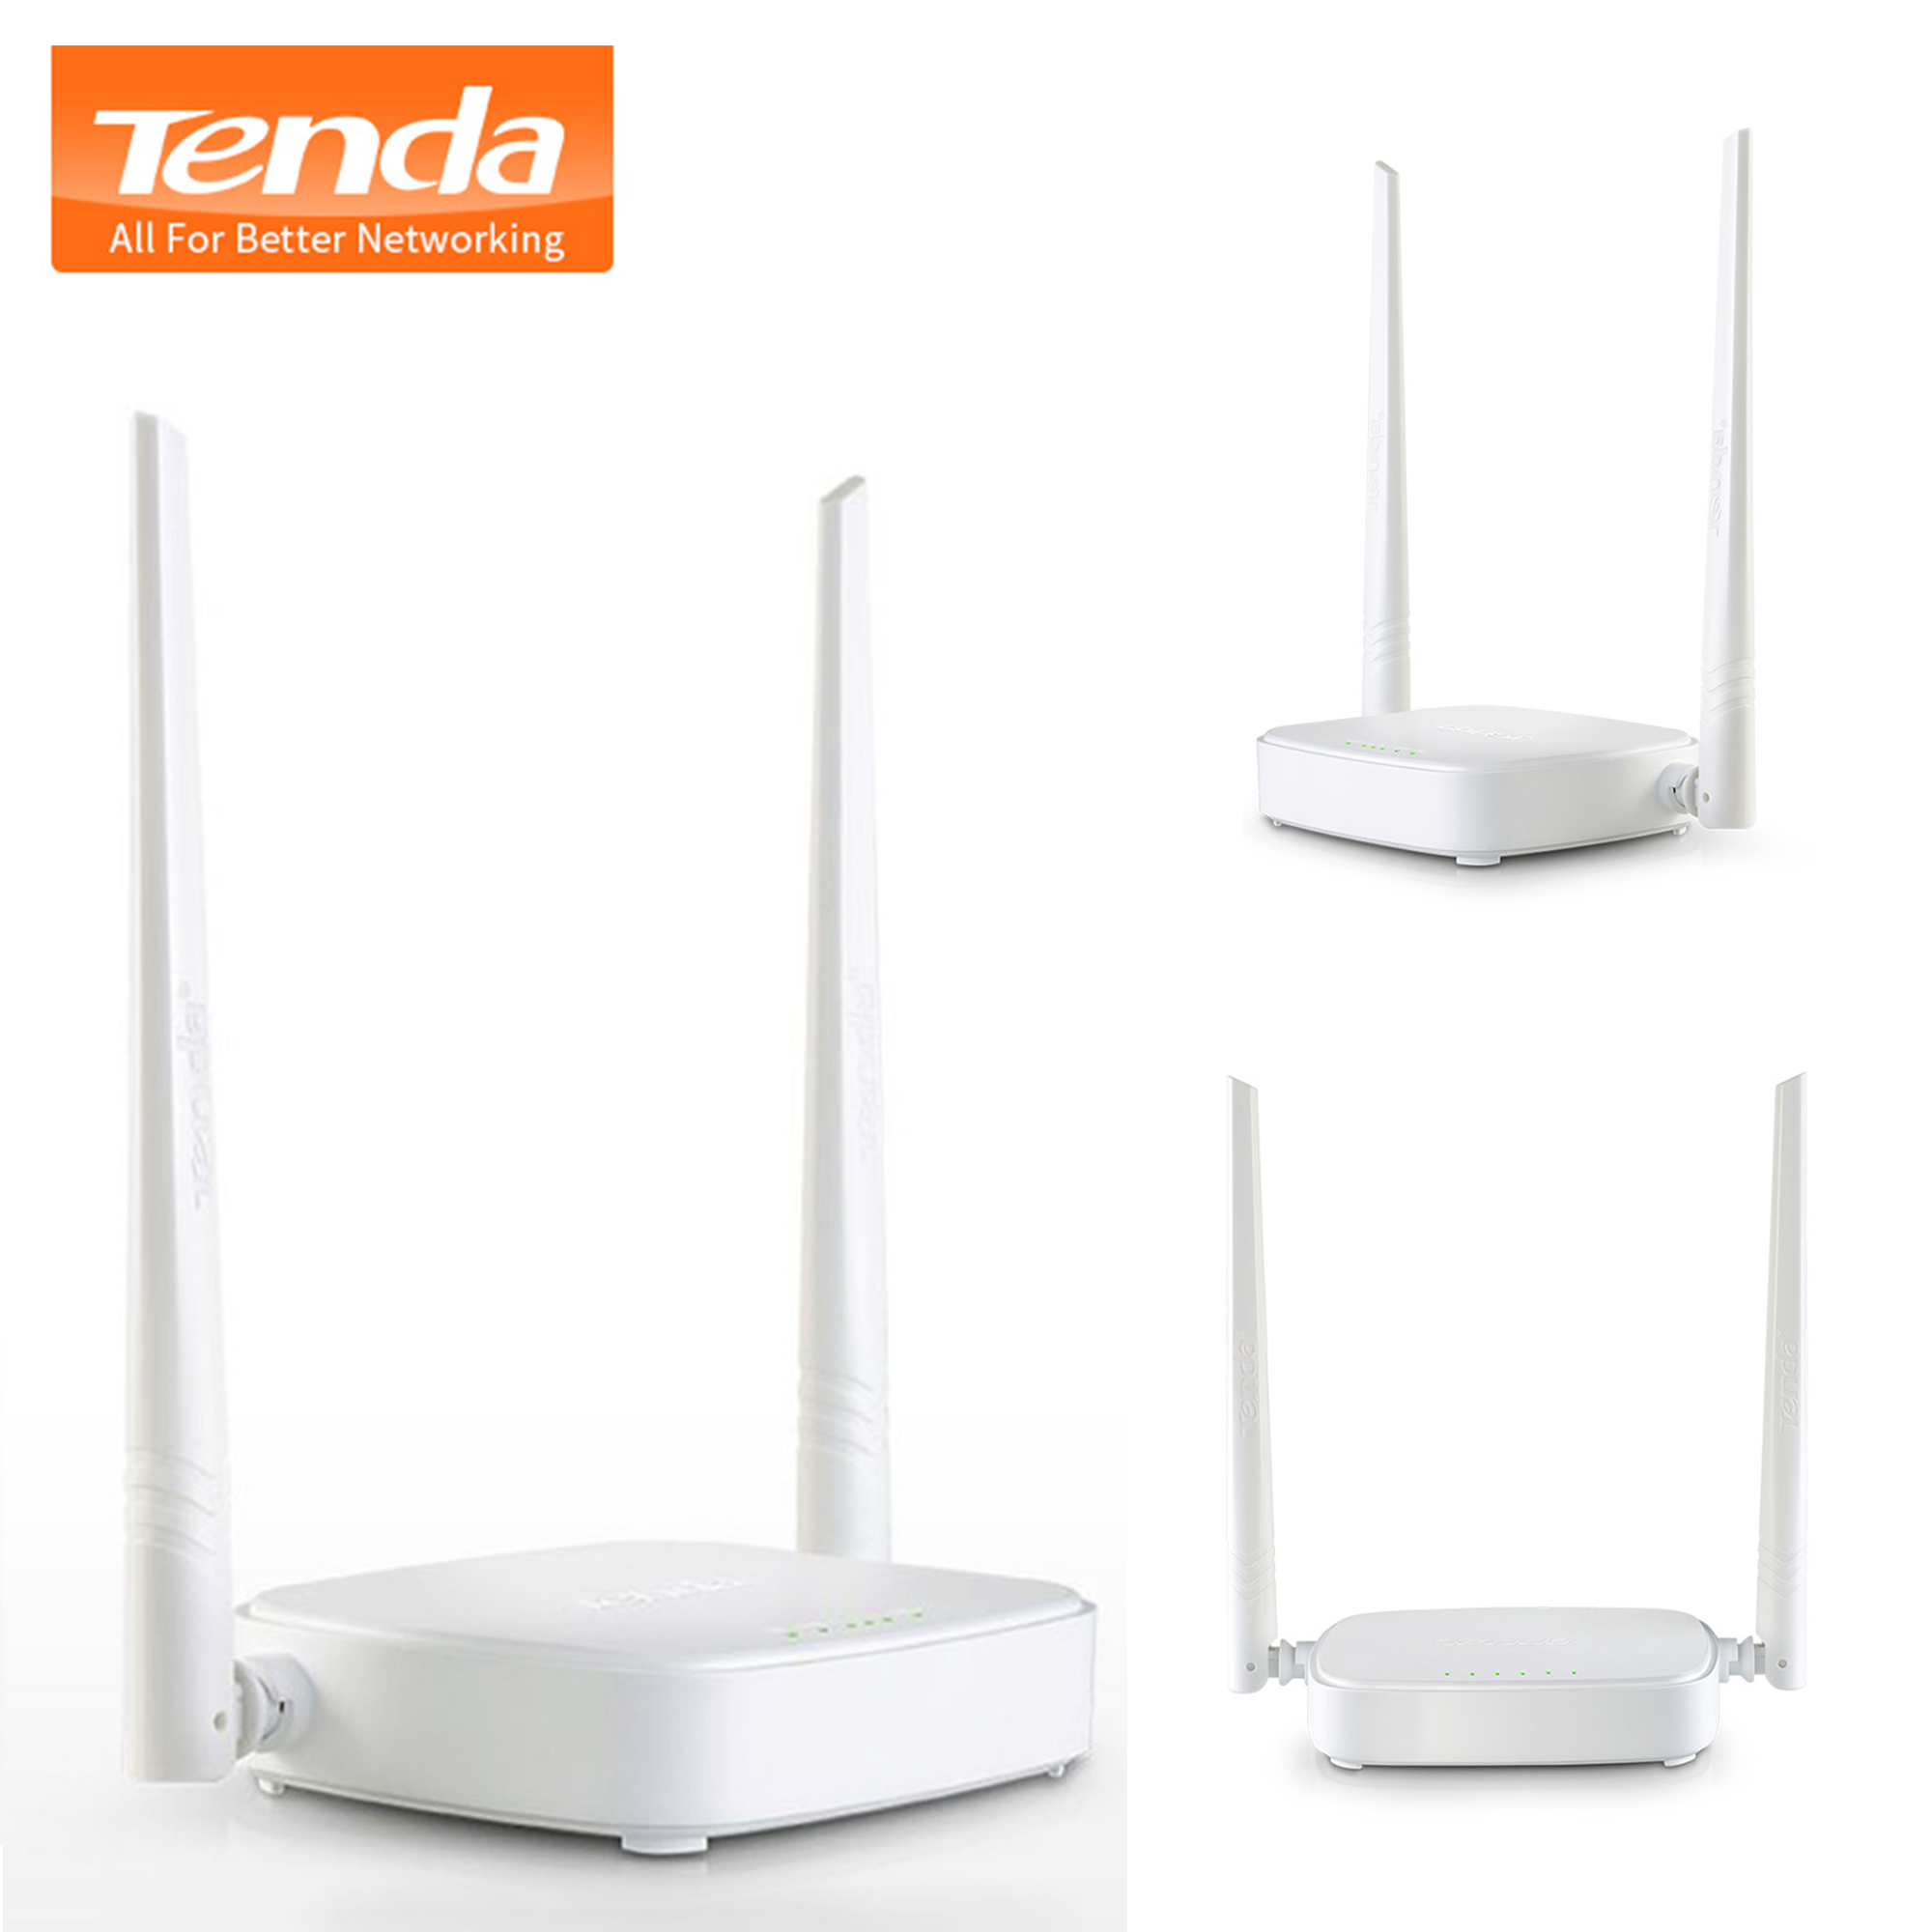 Tenda N301 300Mbps Wireless WiFi Router Wi-Fi Reperter 1WAN 3LAN Ports